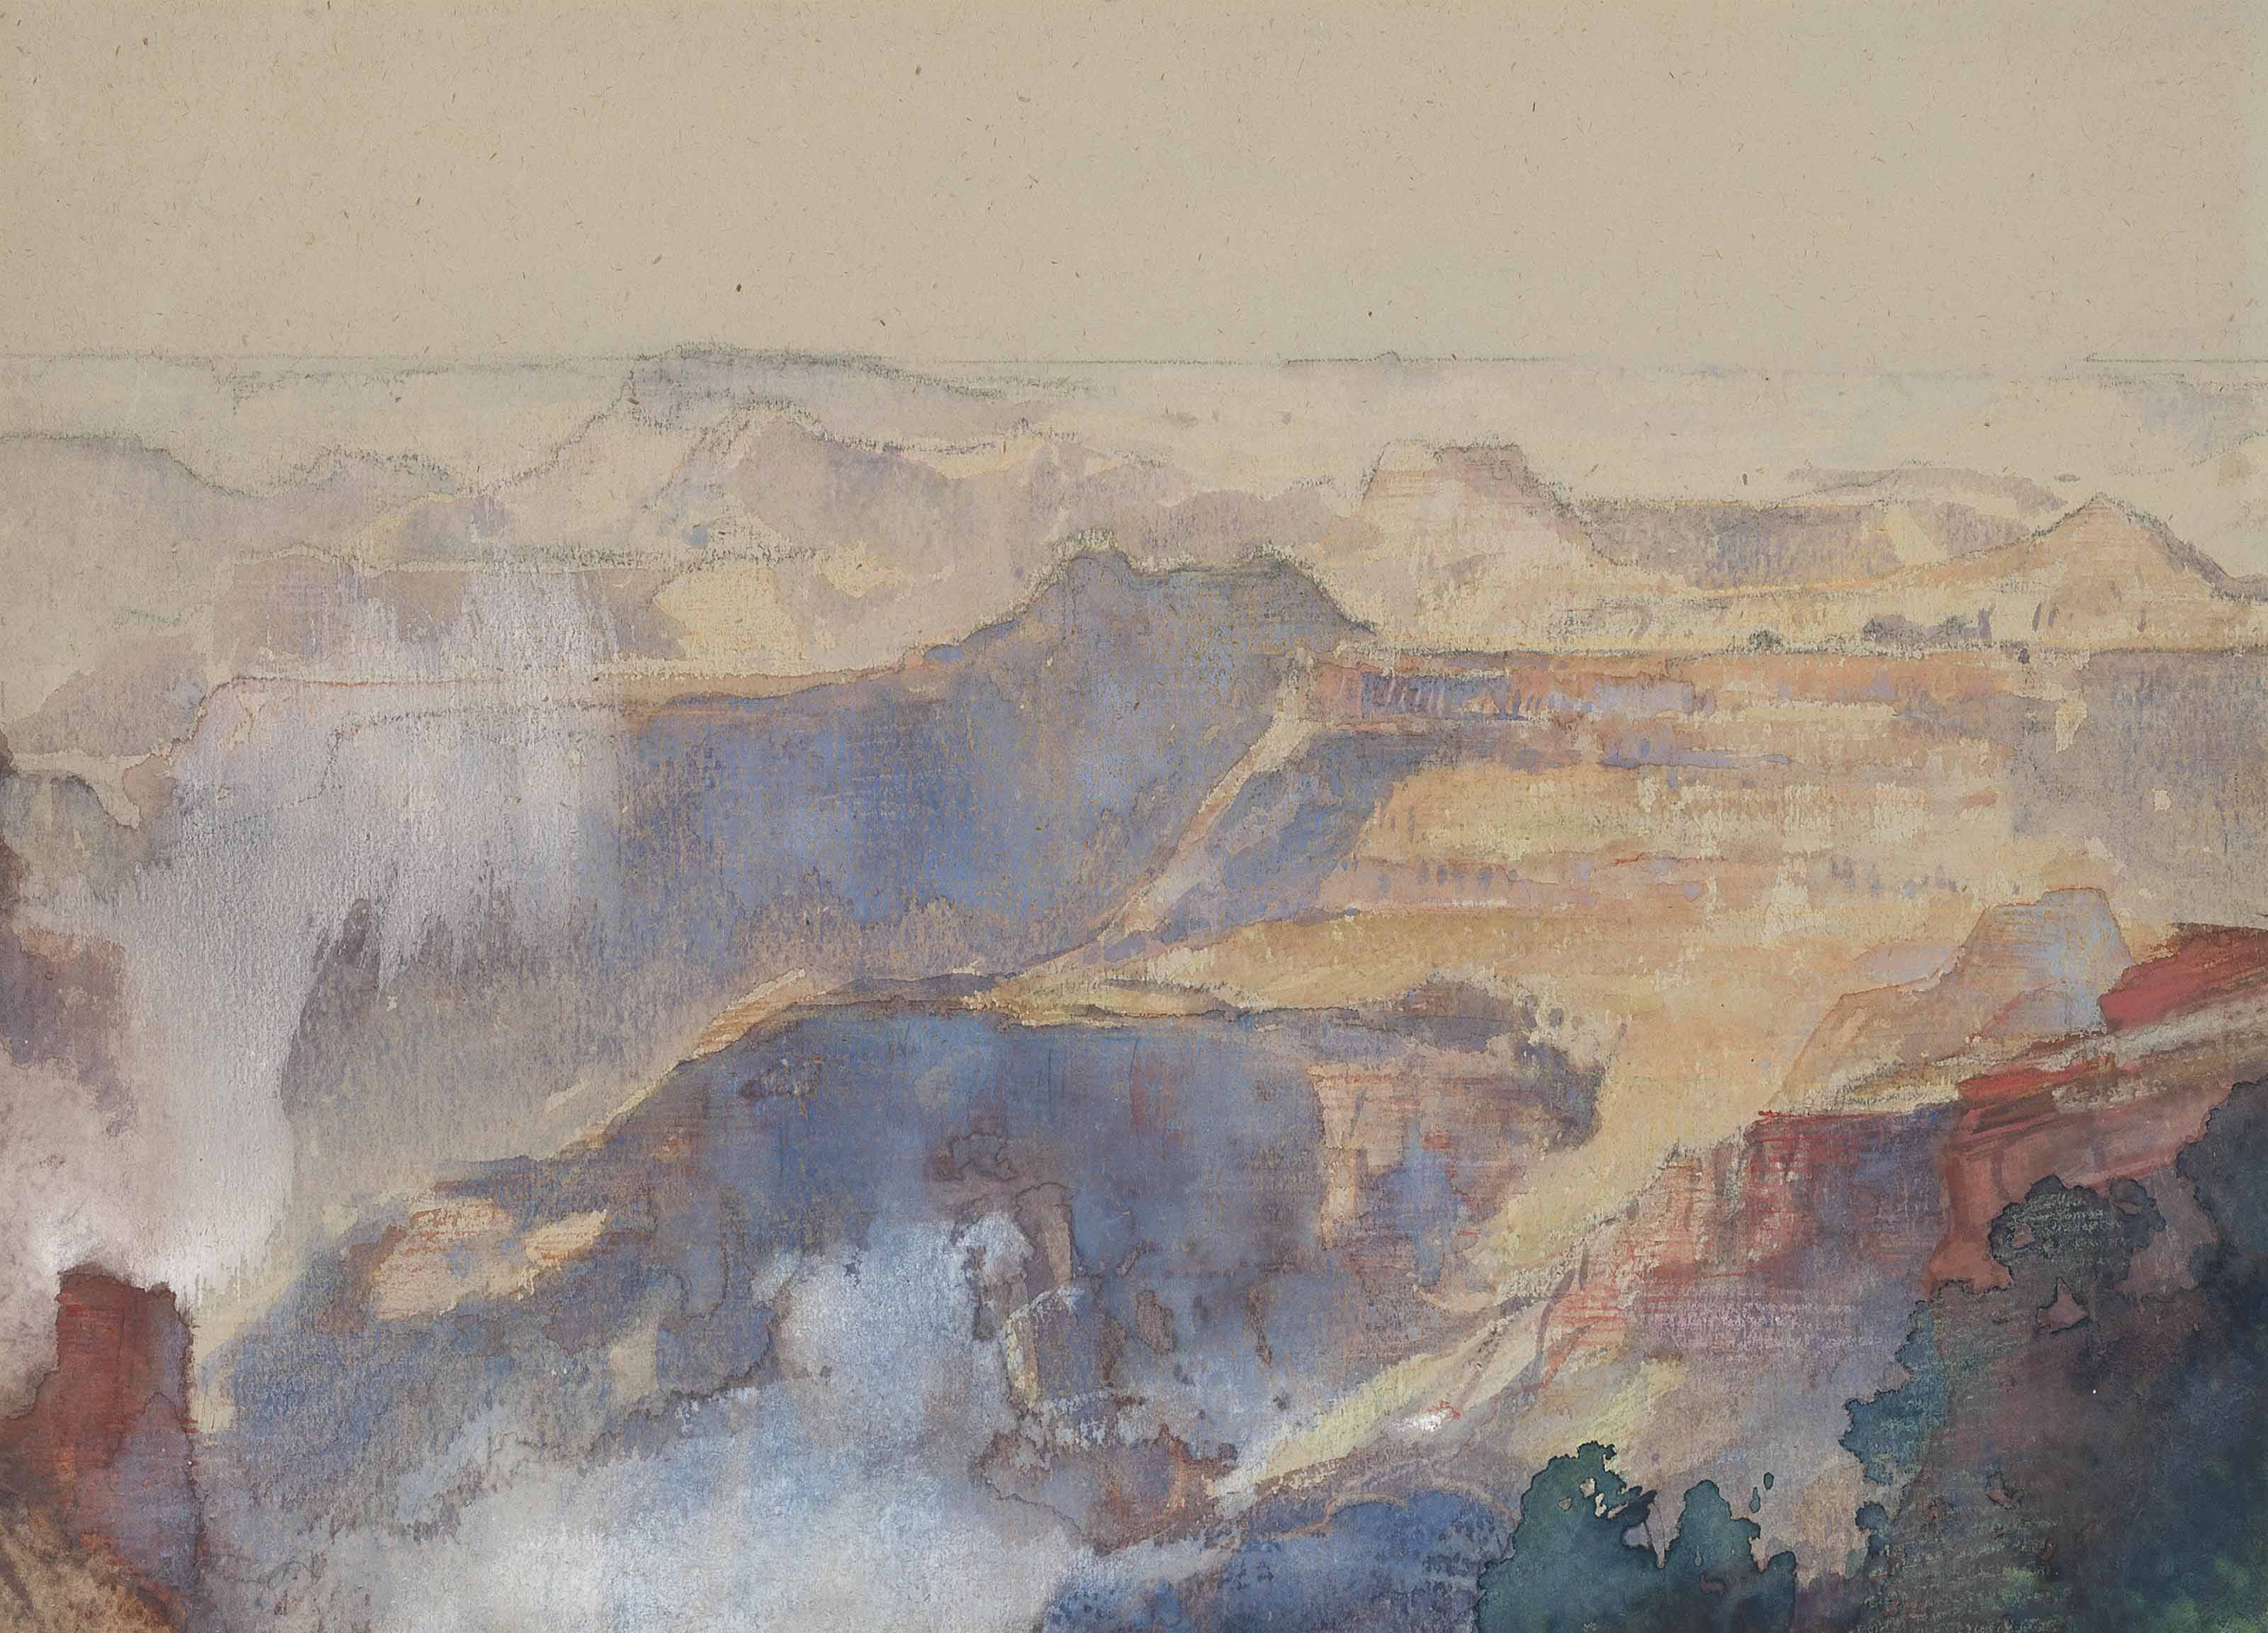 Above the Kaibab twist, Grand Canyon, America